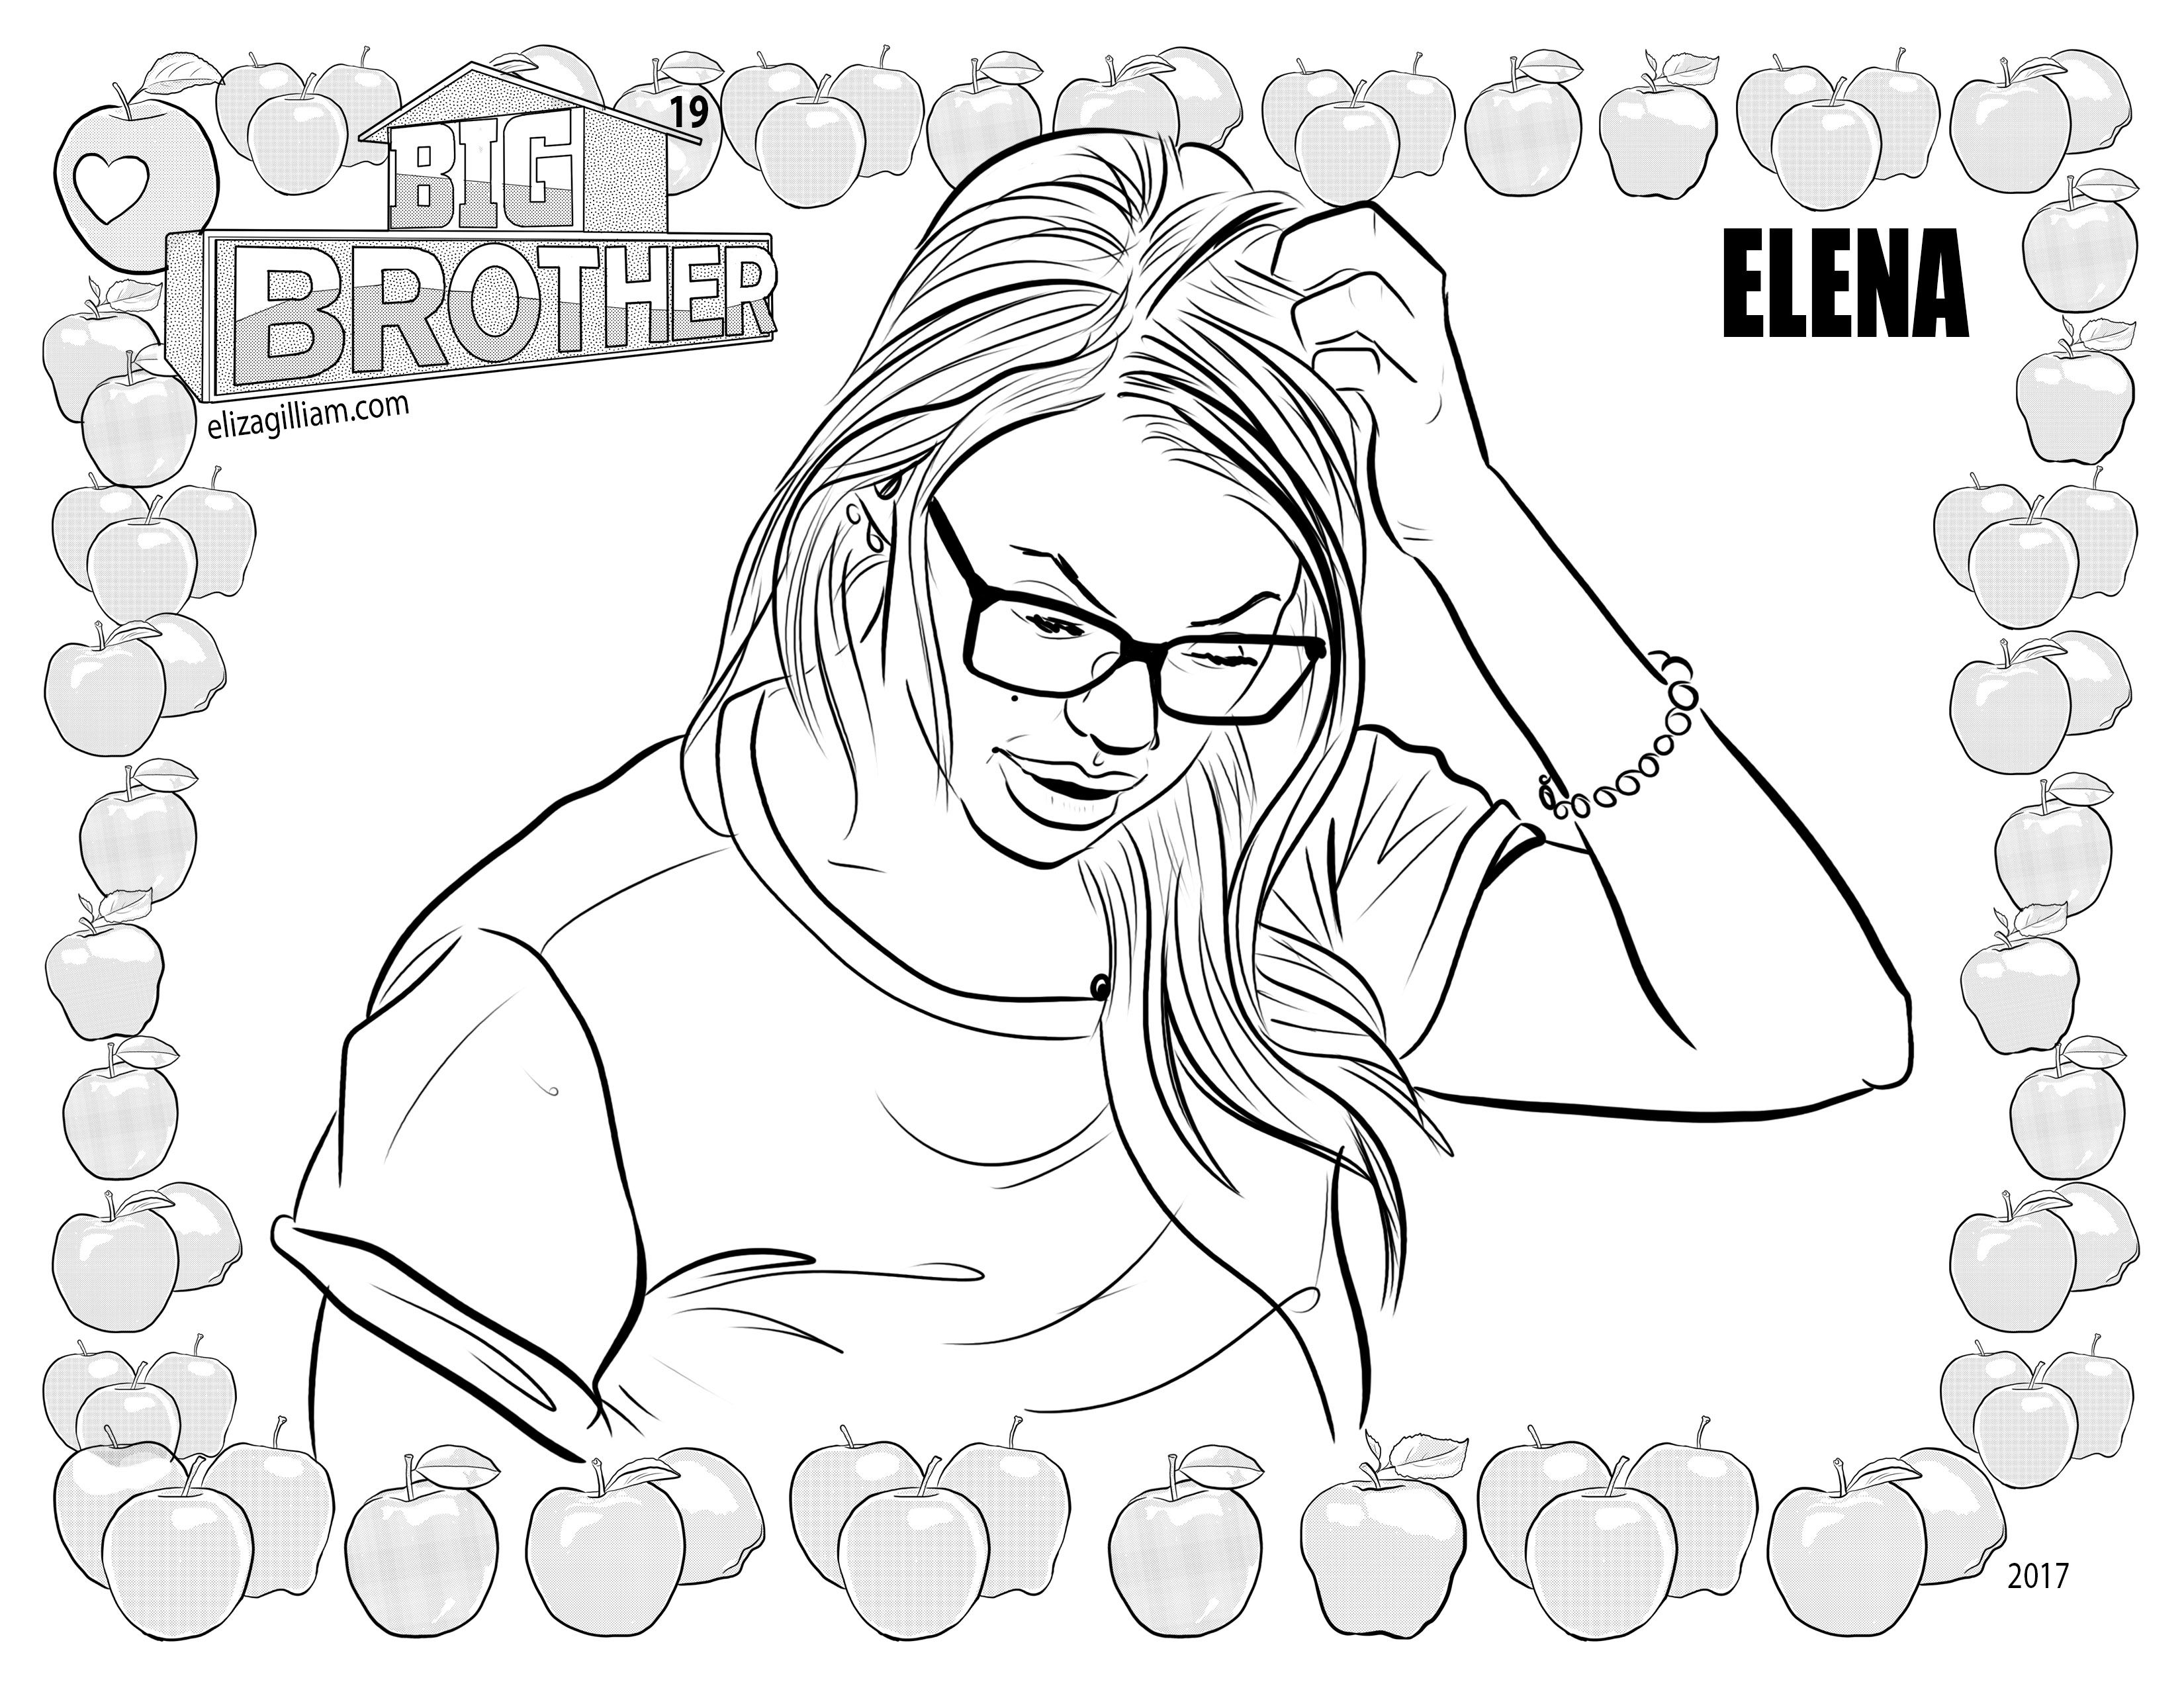 cbs big brother 19 house guest elena davies coloring page for fans